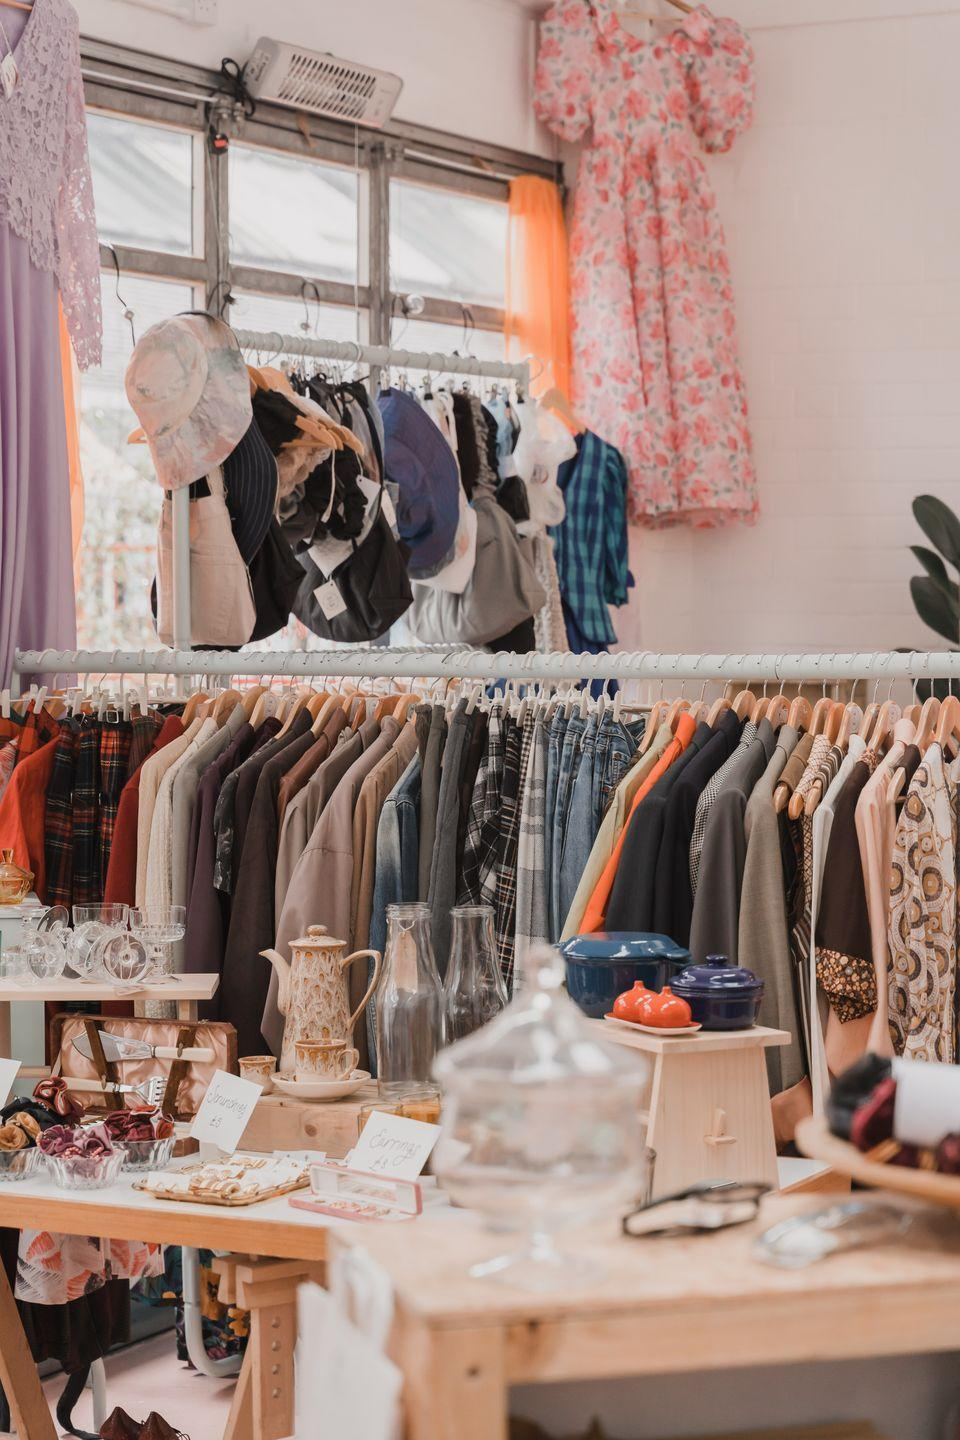 """<p>Not only is Soul and Flare both a physical and digital store, but it also sells reworked pieces as well as straight-up vintage ones. </p><p>We're obsessed with the upcycled shirt dresses founder Gay Bennet envisions.</p><p><a class=""""link rapid-noclick-resp"""" href=""""https://soulandflare.co.uk/"""" rel=""""nofollow noopener"""" target=""""_blank"""" data-ylk=""""slk:SHOP SOUL AND FLARE"""">SHOP SOUL AND FLARE</a></p>"""